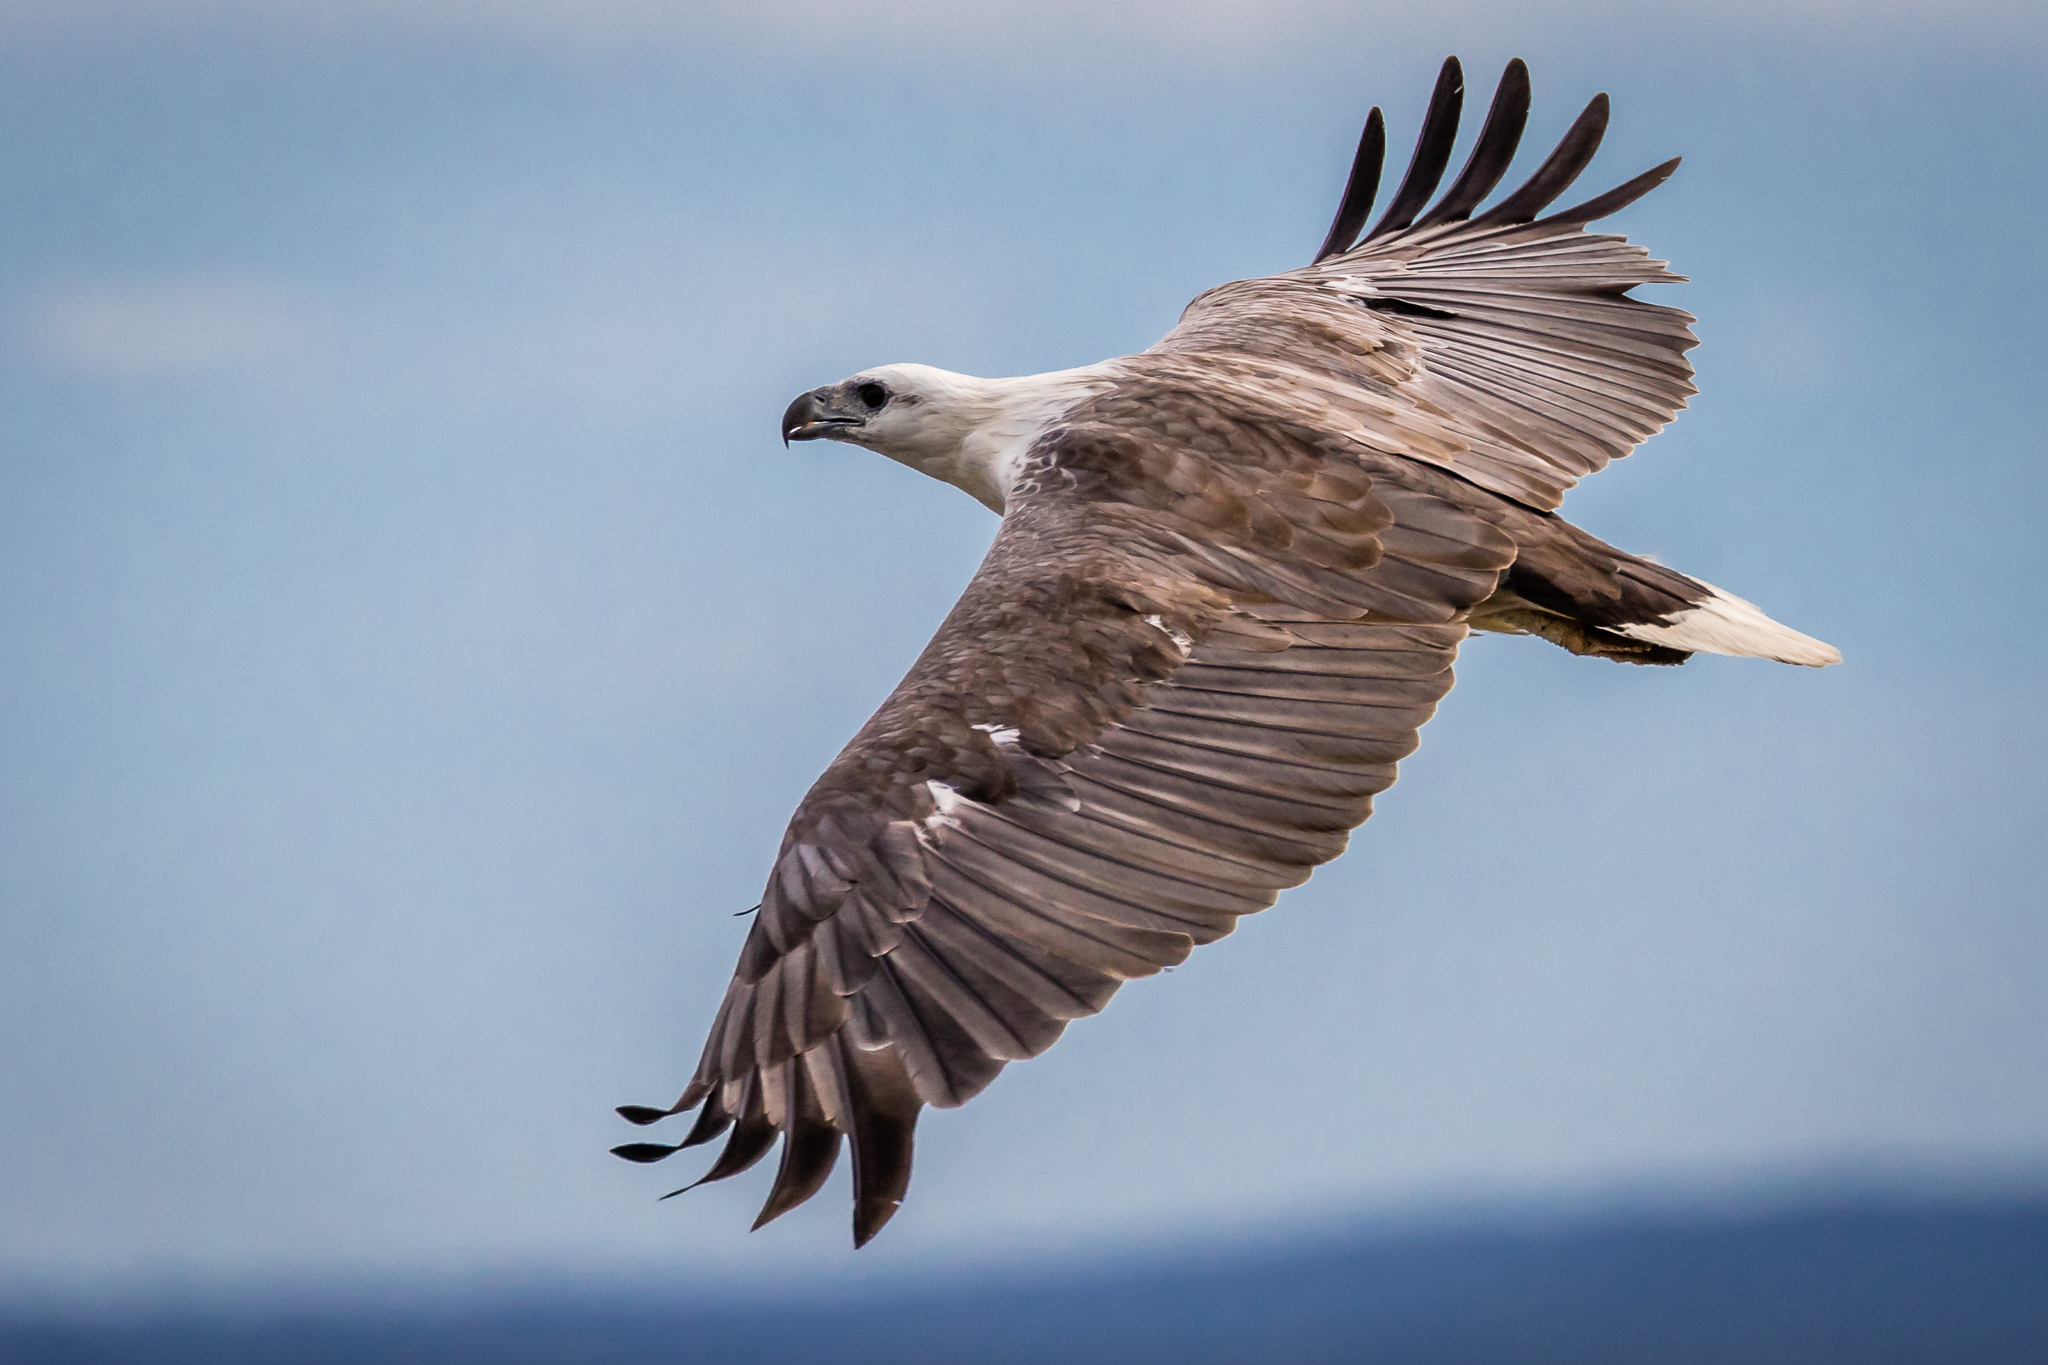 White-bellied Sea-Eagles are often seen perching in trees near the sea before soaring effortlessly. They are found around Australia's coast but also on inland waterways and lakes.